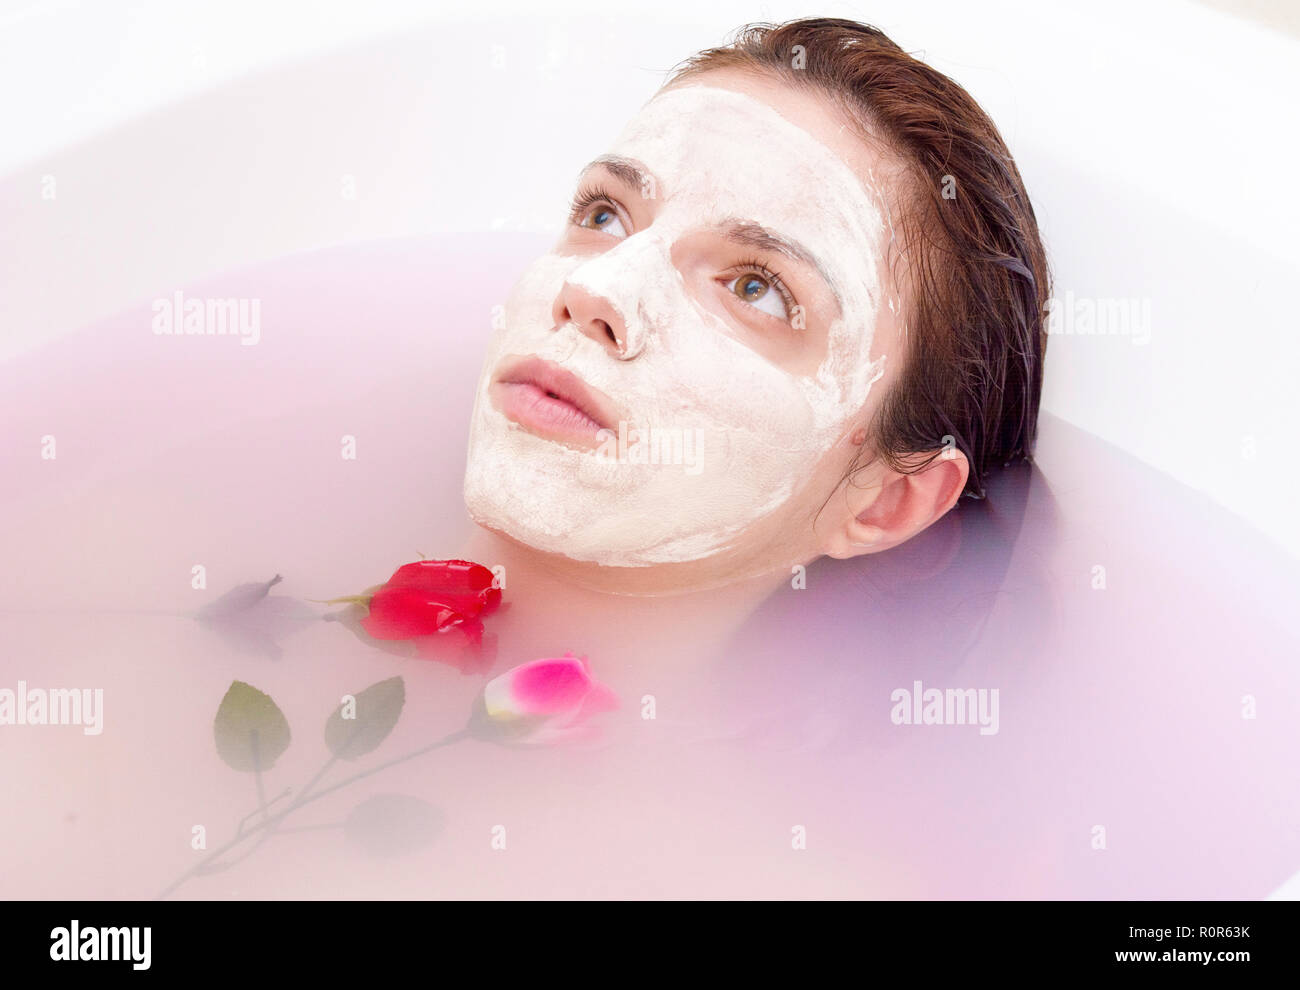 Redhead Model Using A Homemade Face Mask With Rose And Coconut Oil Stock Photo Alamy